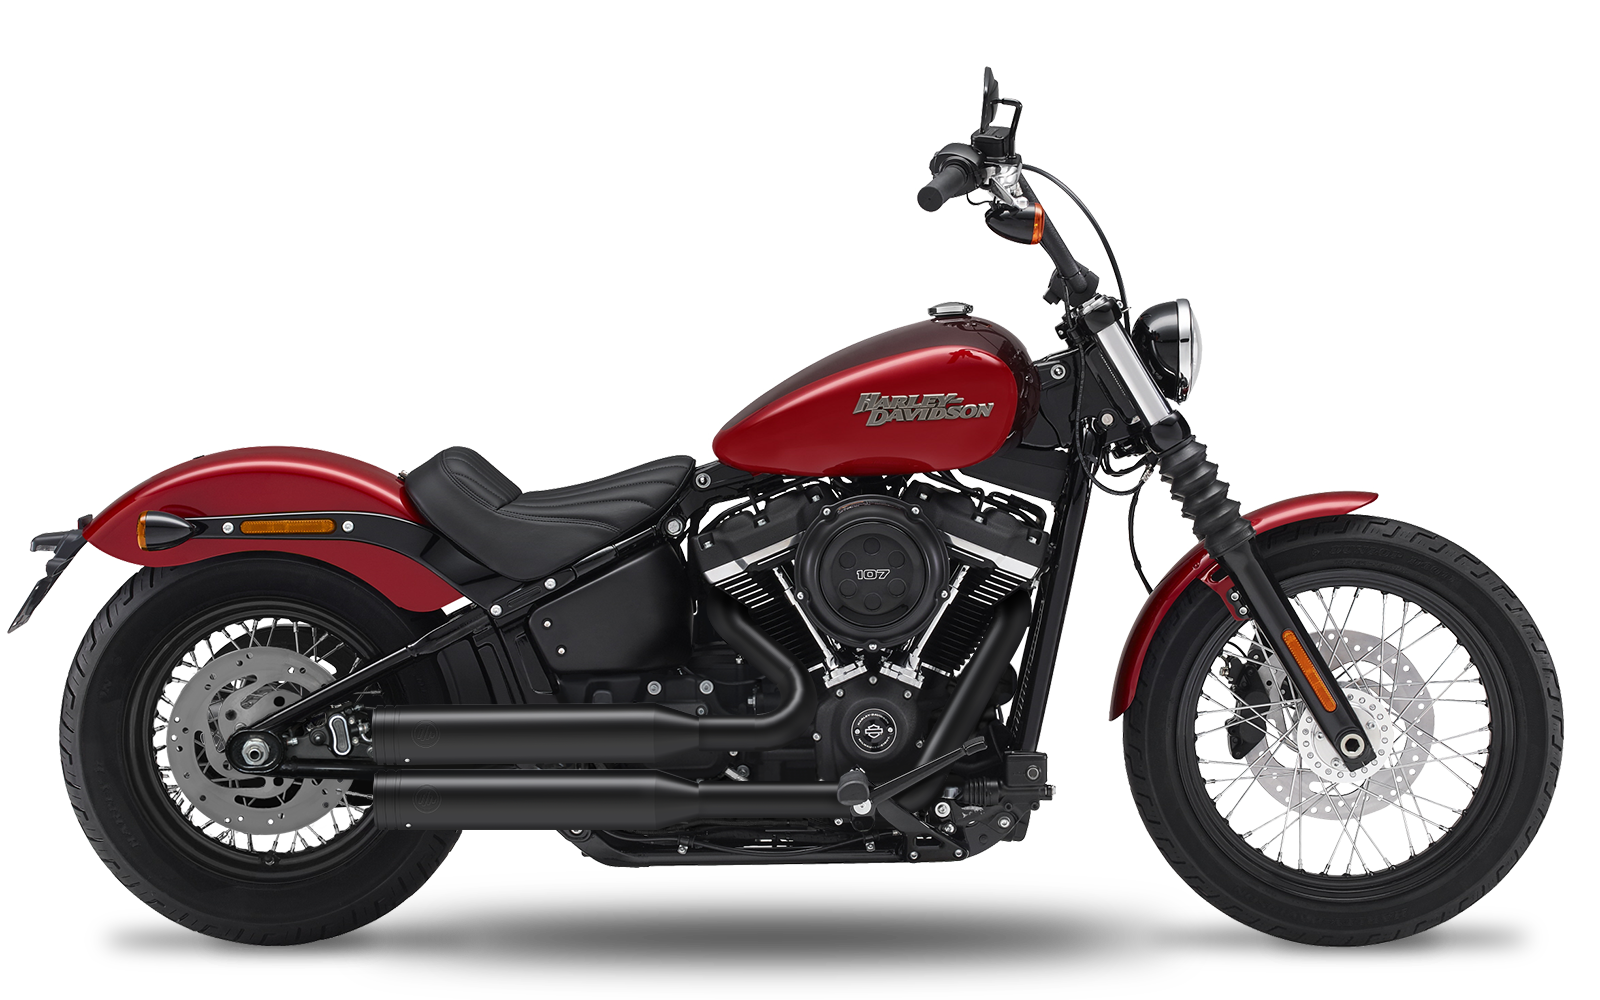 Softail - Standard - ME107 - 2021 - Complete systems adjustable